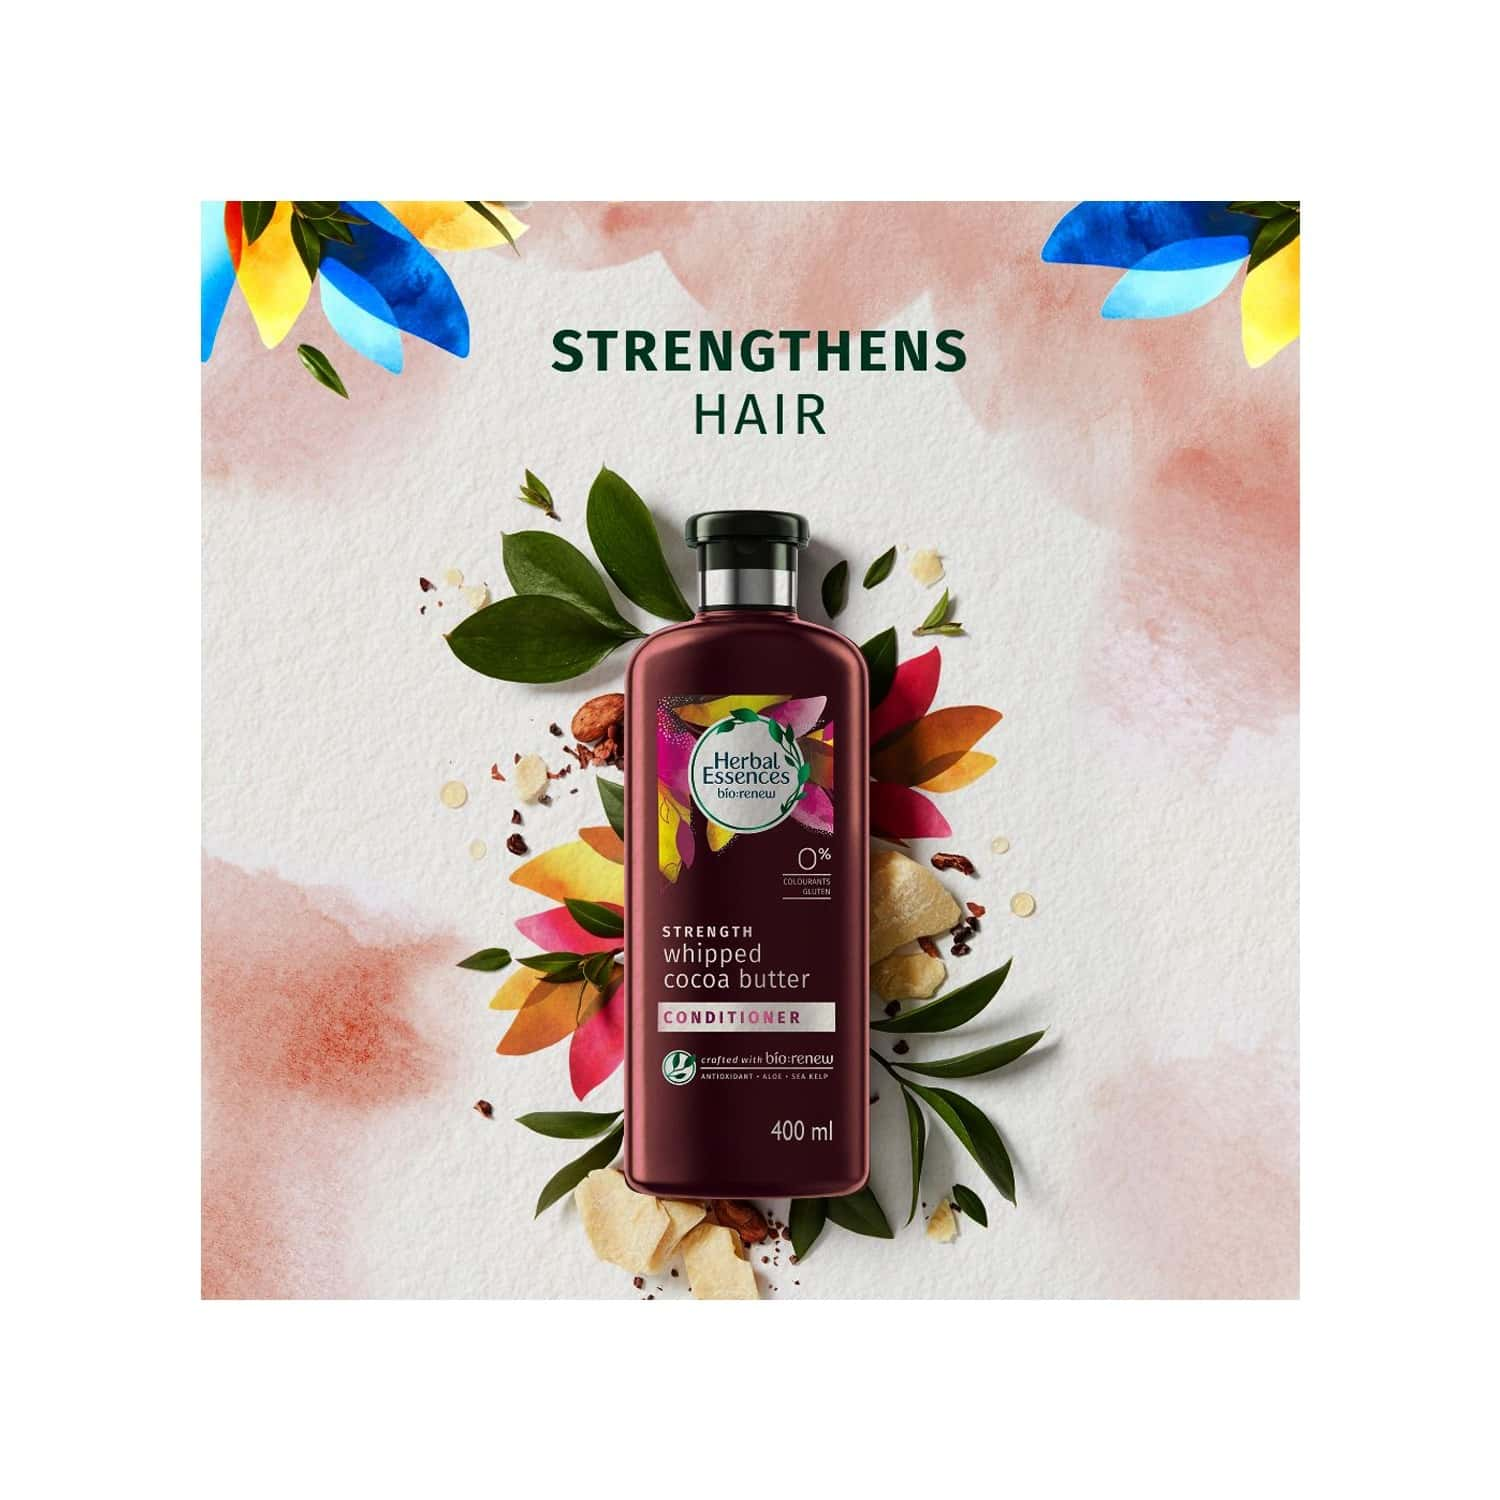 Herbal Essences Bio Renew Strength Whipped Cocoa Butter Conditioner - 400ml